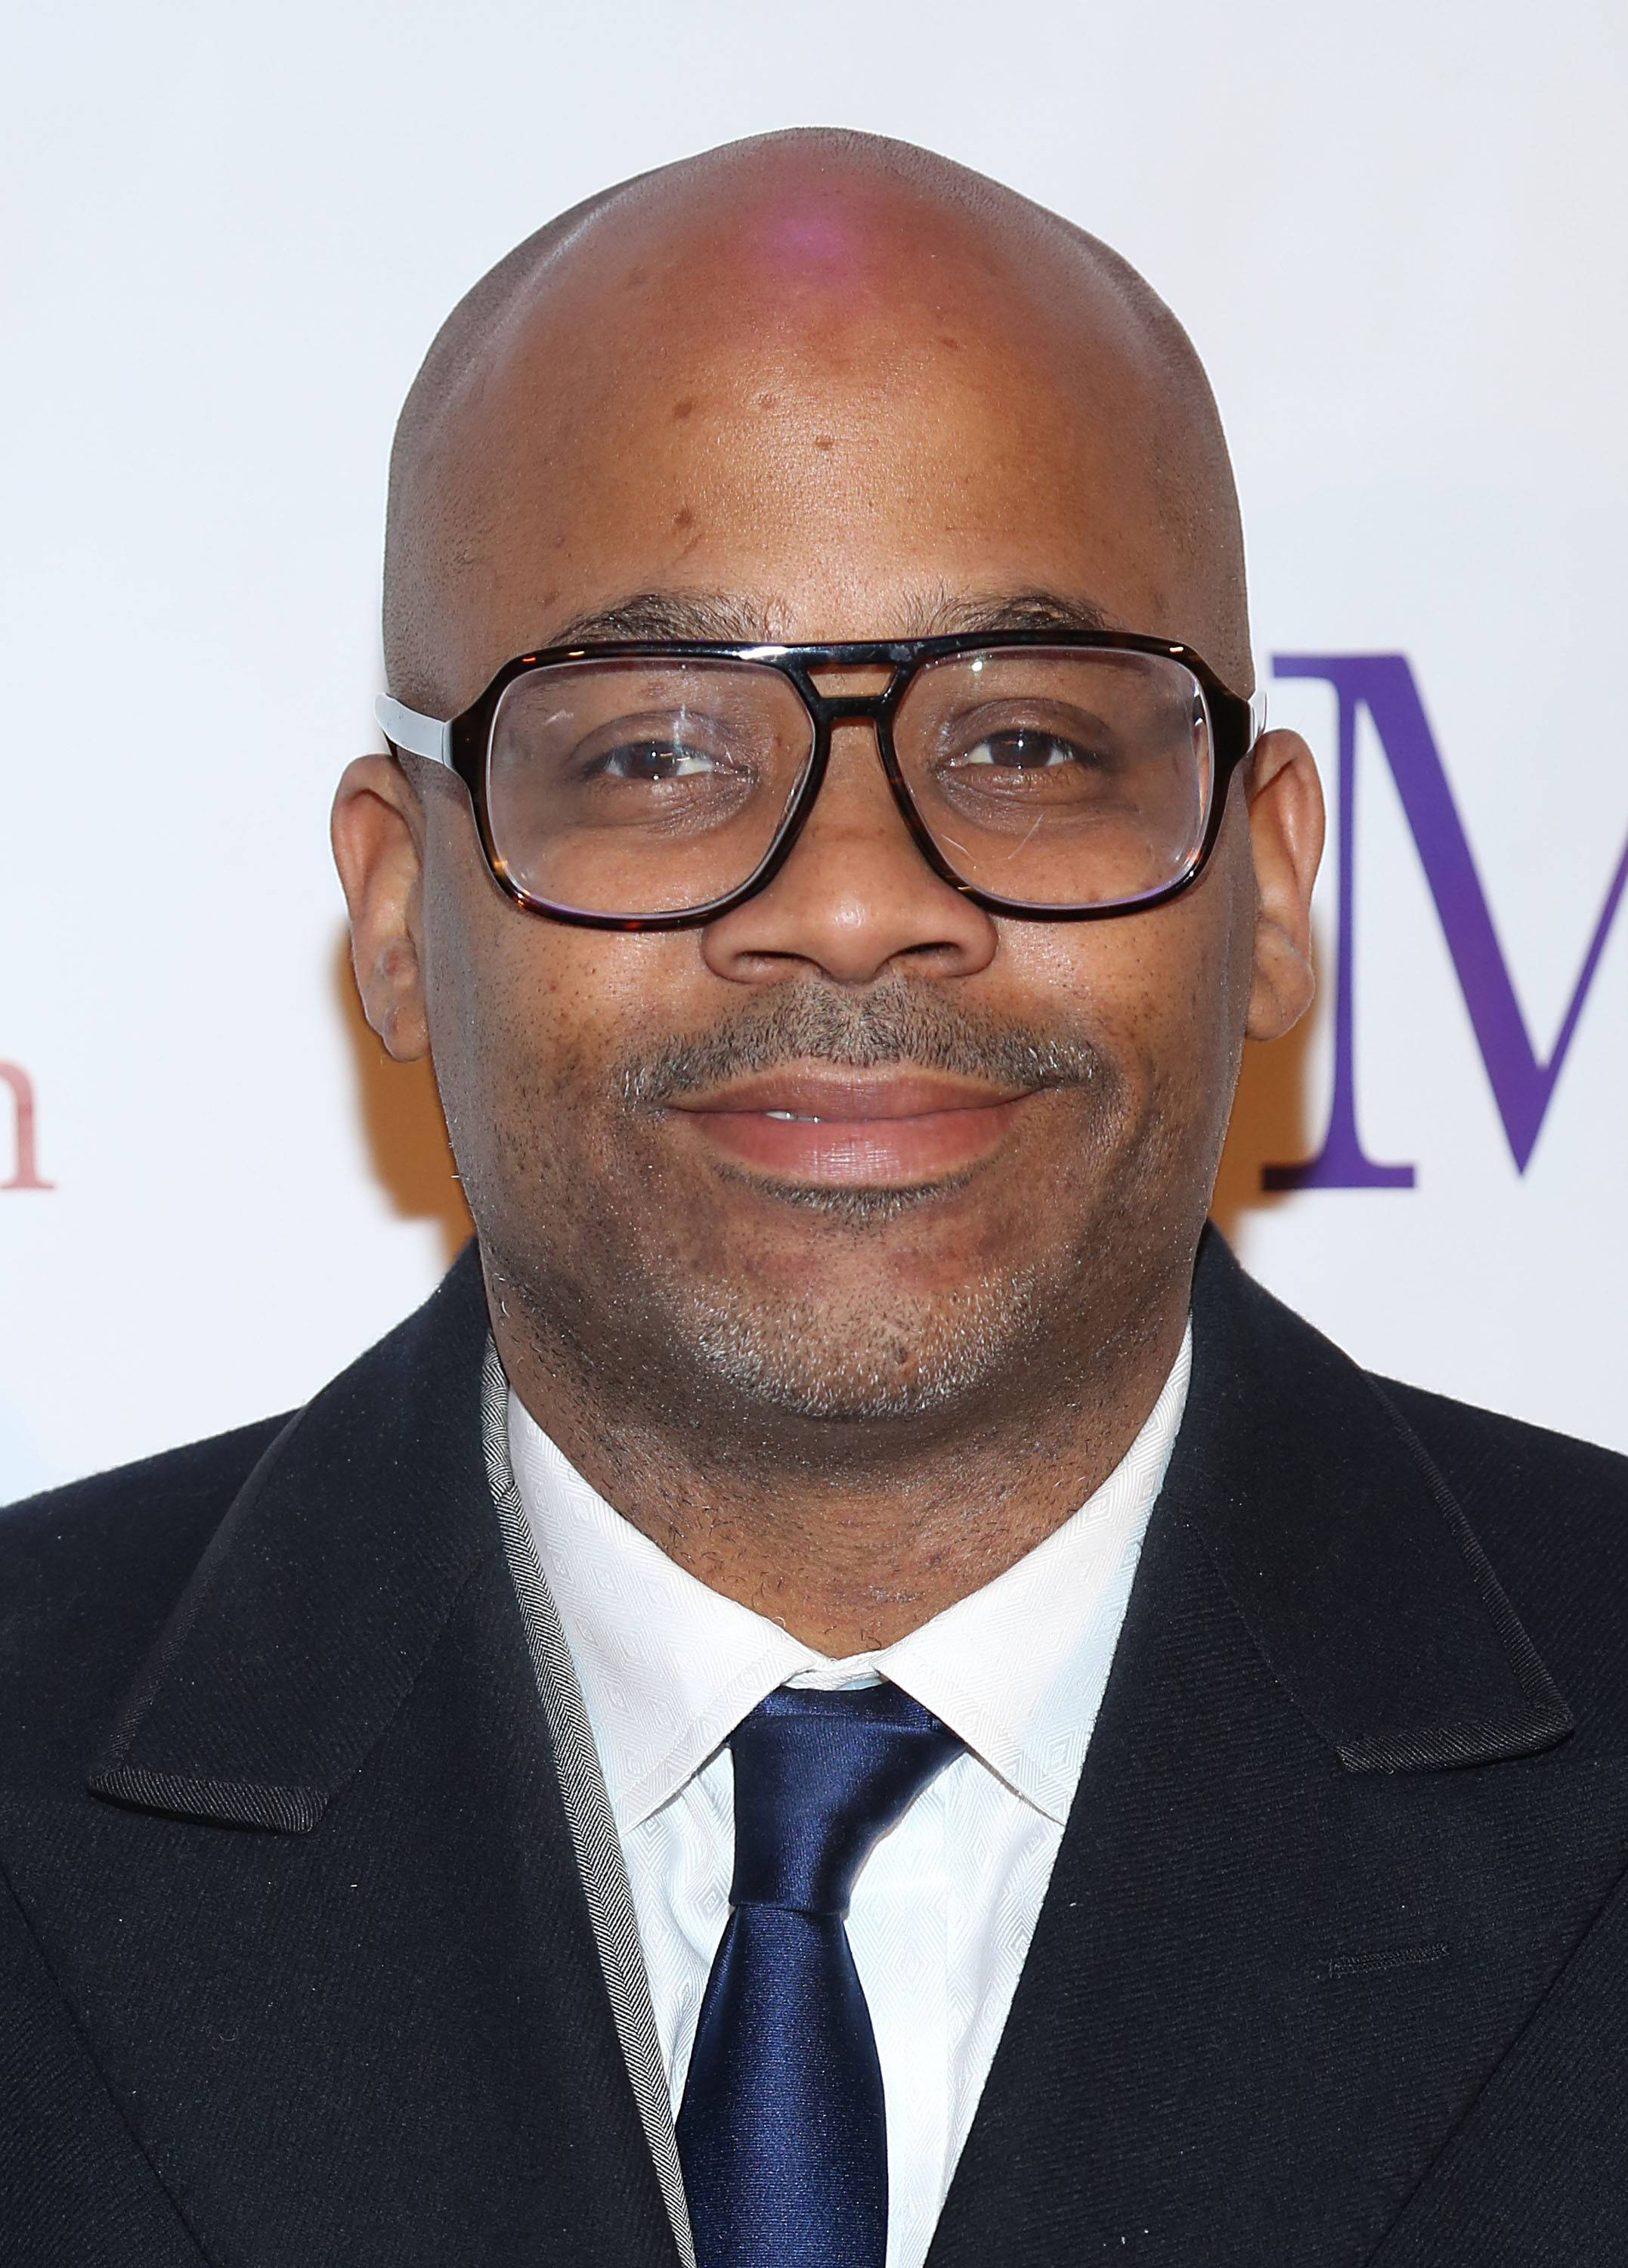 """Damon """"Dame"""" Dash - Damon Dash is one of hip hop's mostwell-known business moguls. From being Jay Z's former manager to being one of the founders of Roc-A-Fella, he's a legend in the industry. (Photo: Rob Kim/Getty Images)"""